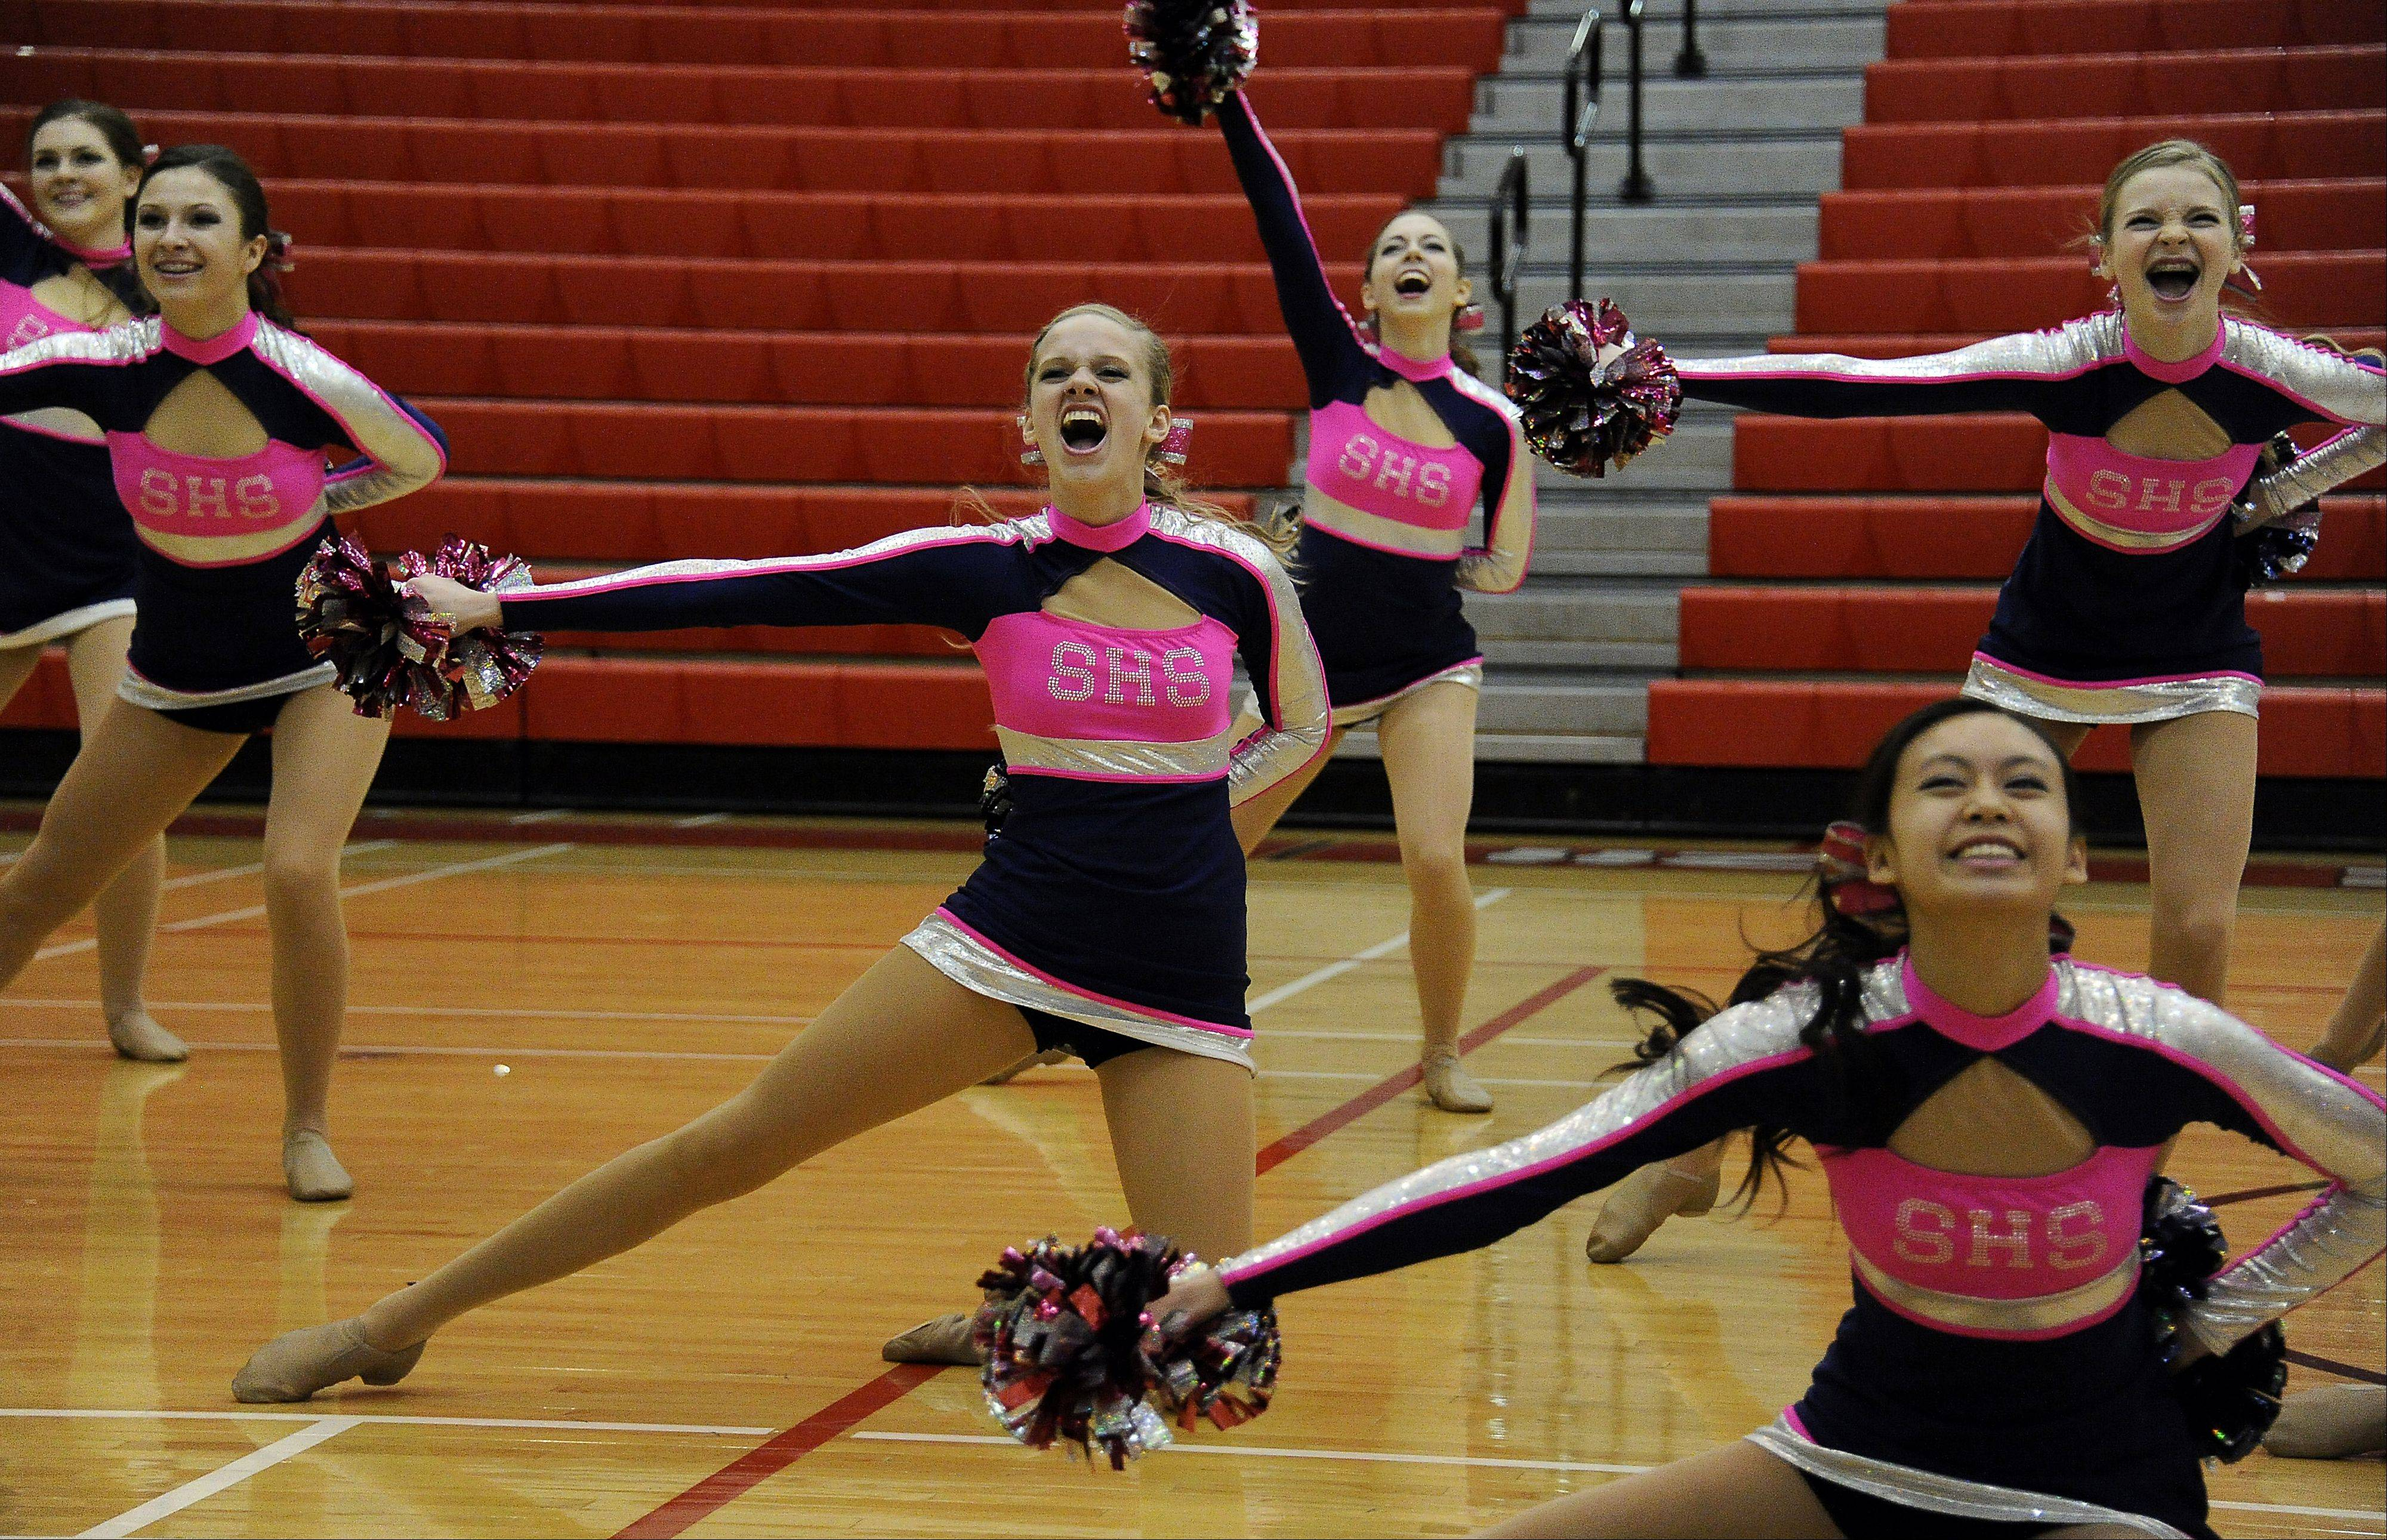 Poms teams compete for sectional title in Palatine